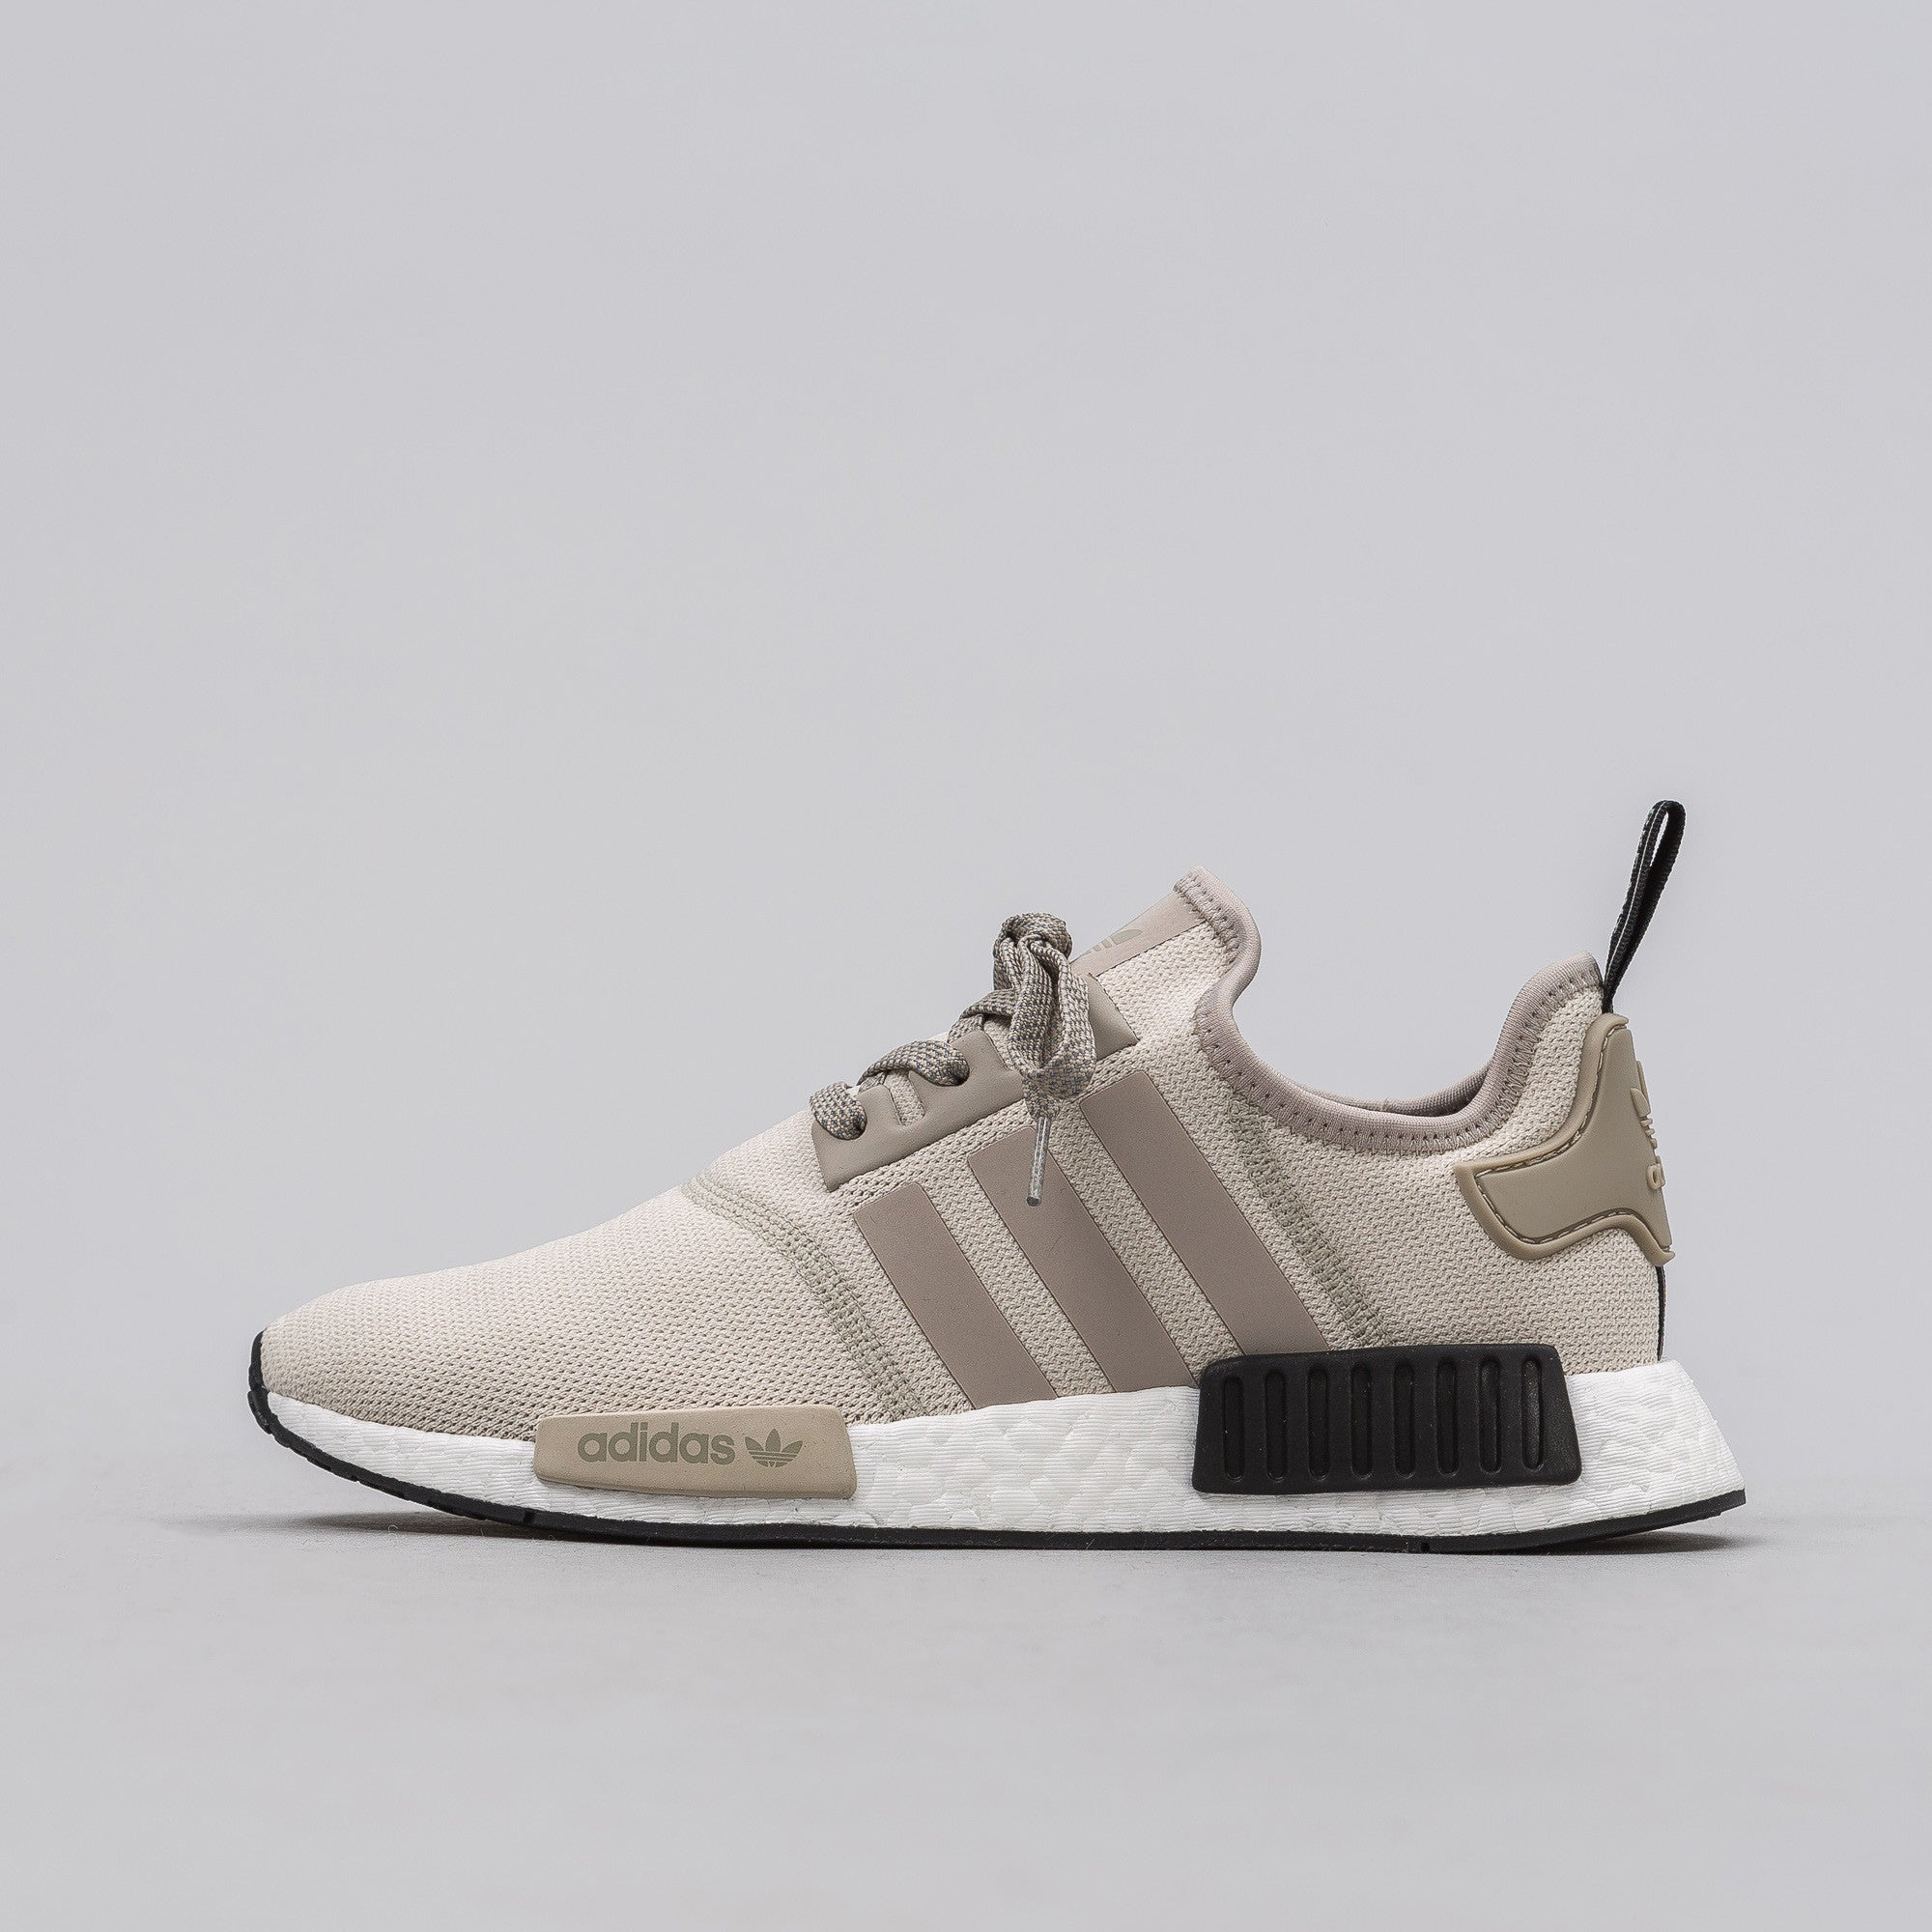 Adidas Nmd R1 Brown